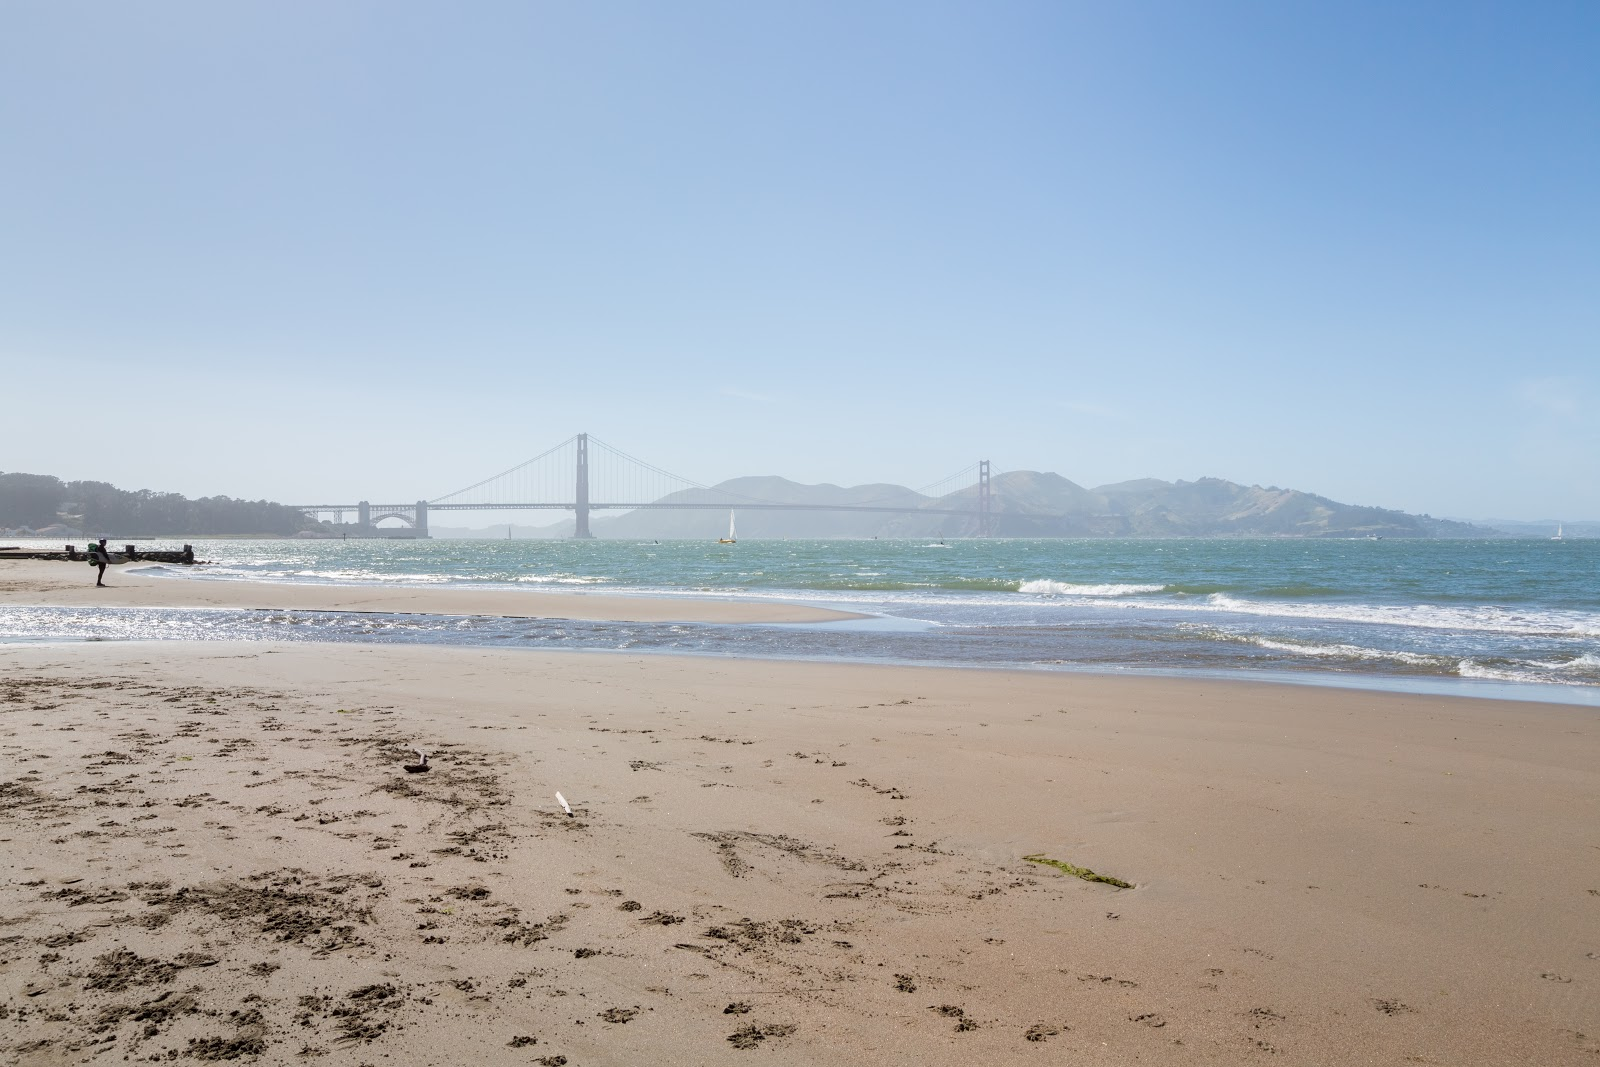 Scenery Photo Of Crissy Field East Beach And The Golden Gate Bridge On Left Side Is Fort Point